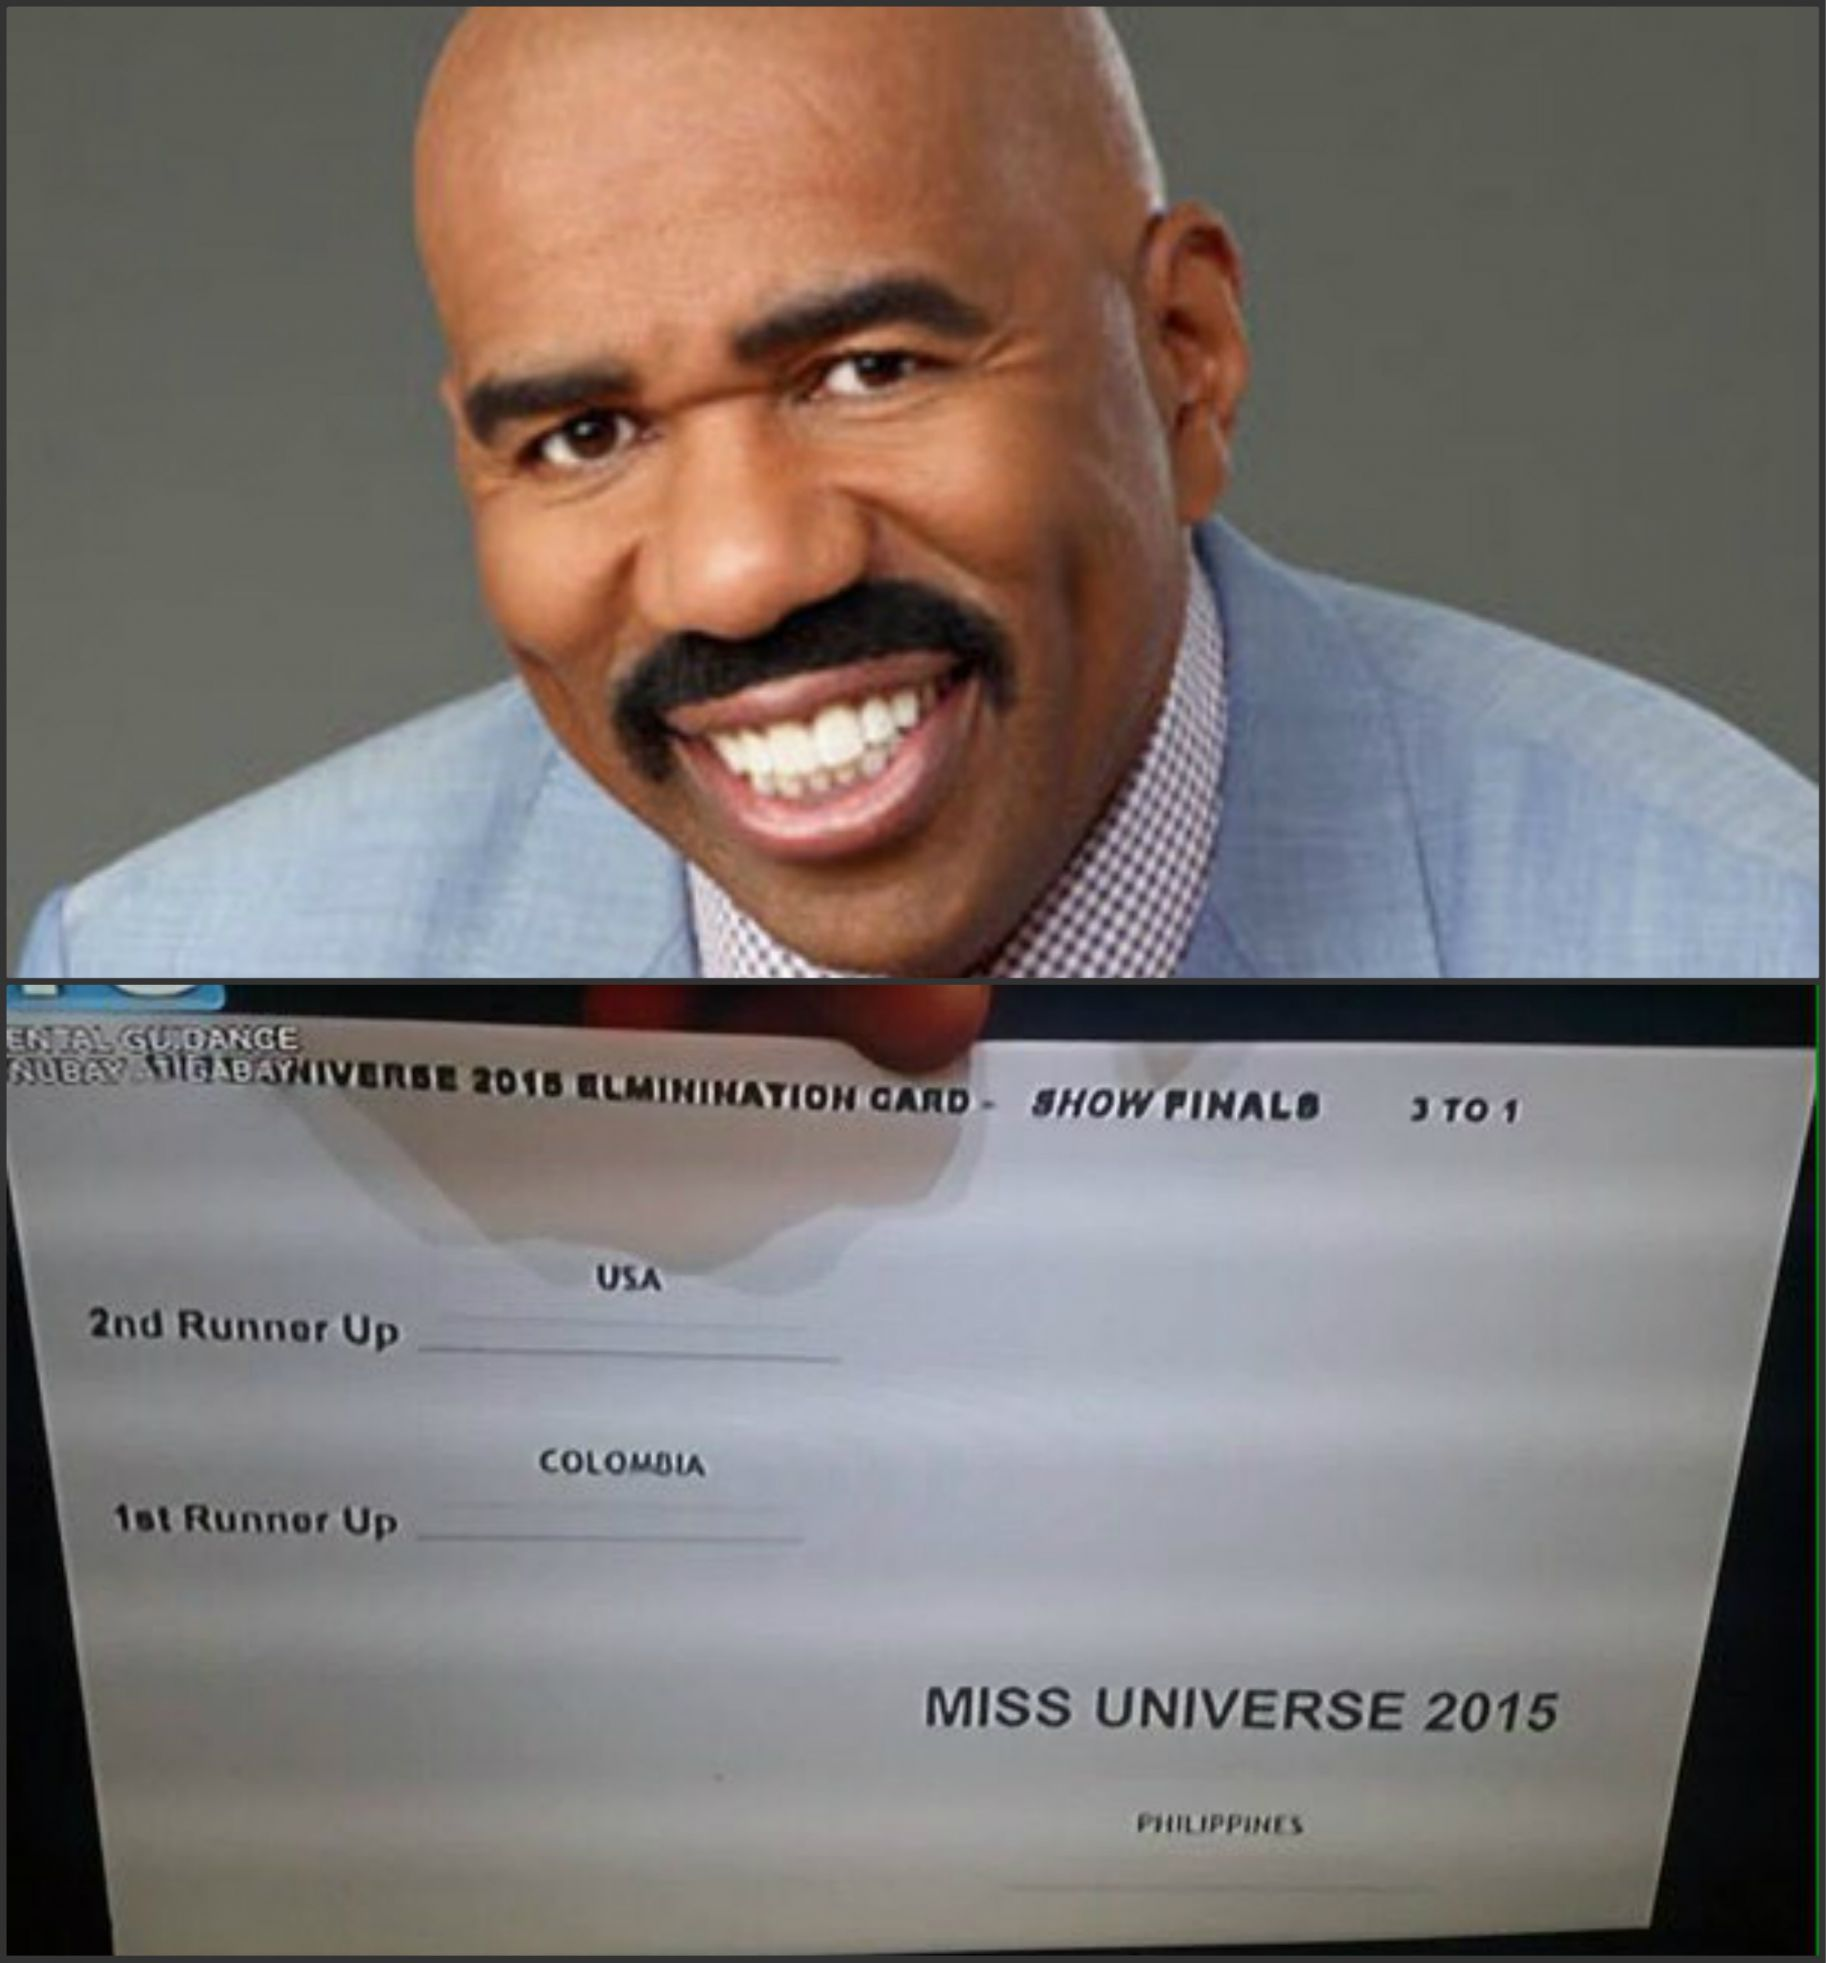 Miss Universe 2015 Blank Template Imgflip